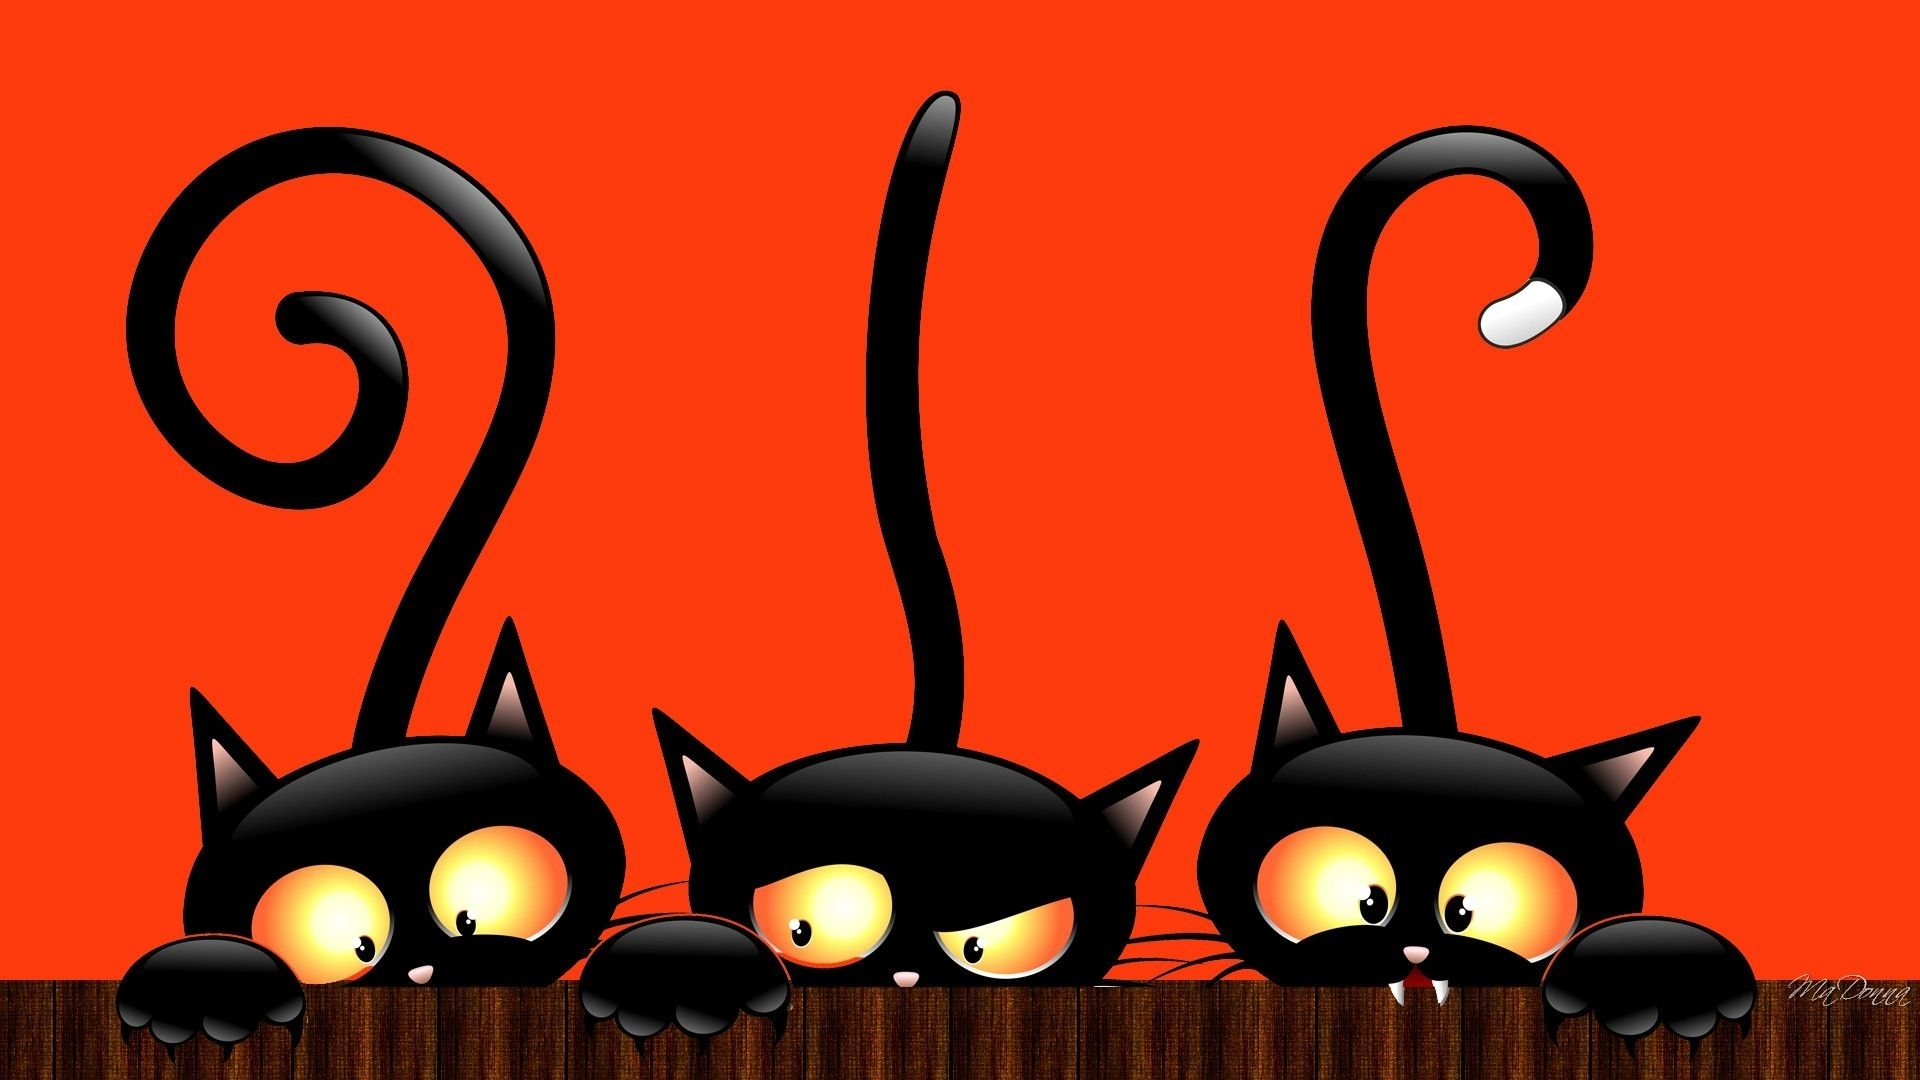 10 New Cute Cat Halloween Backgrounds FULL HD 1920x1080 For PC Desktop 2018 Free